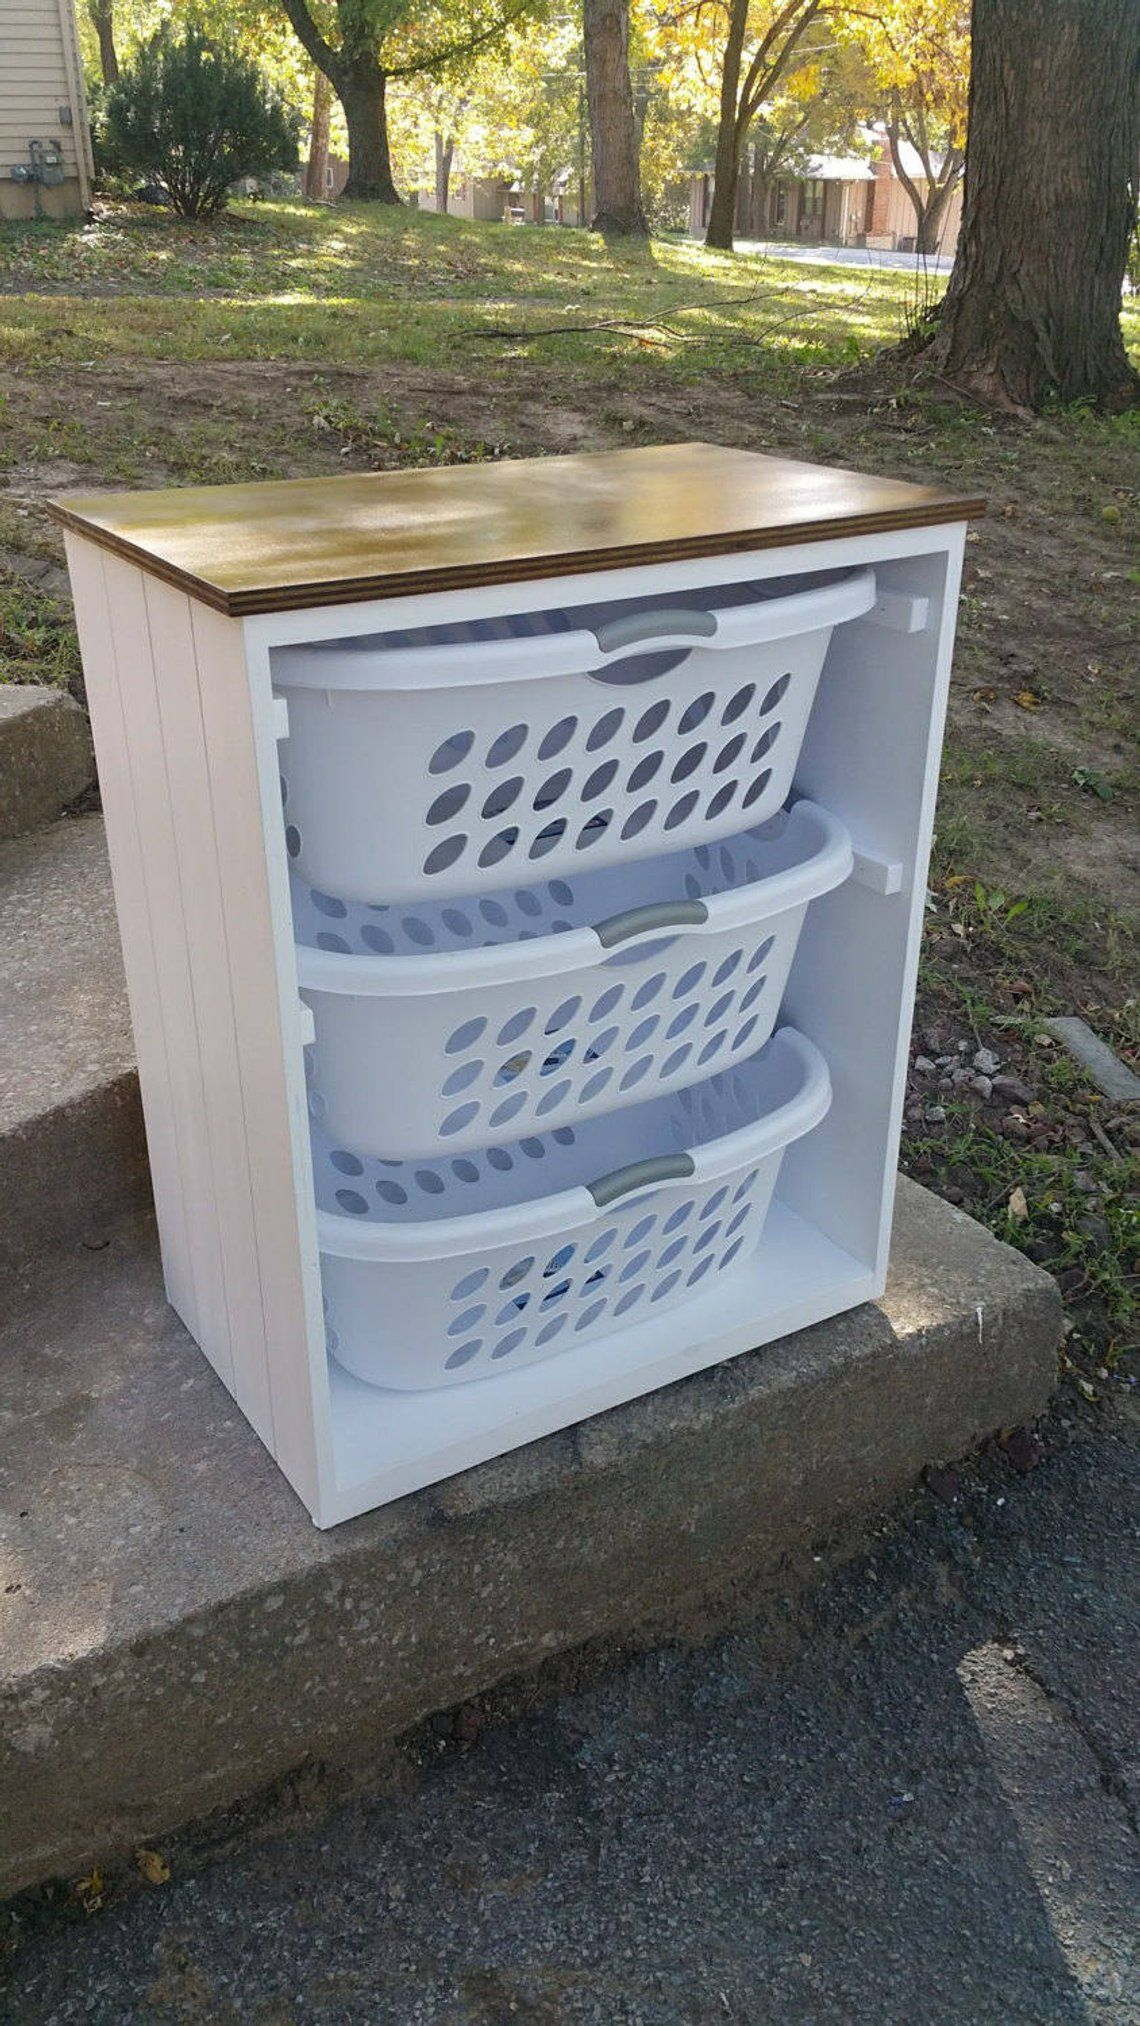 Laundry Basket Holder Laundry Room Decor Laundry Organizer Laundry Basket Organizer Laundry Furniture Clothes Basket Organizer Cabinet Wooden Laundry Basket Laundry Basket Holder Laundry Basket Organization